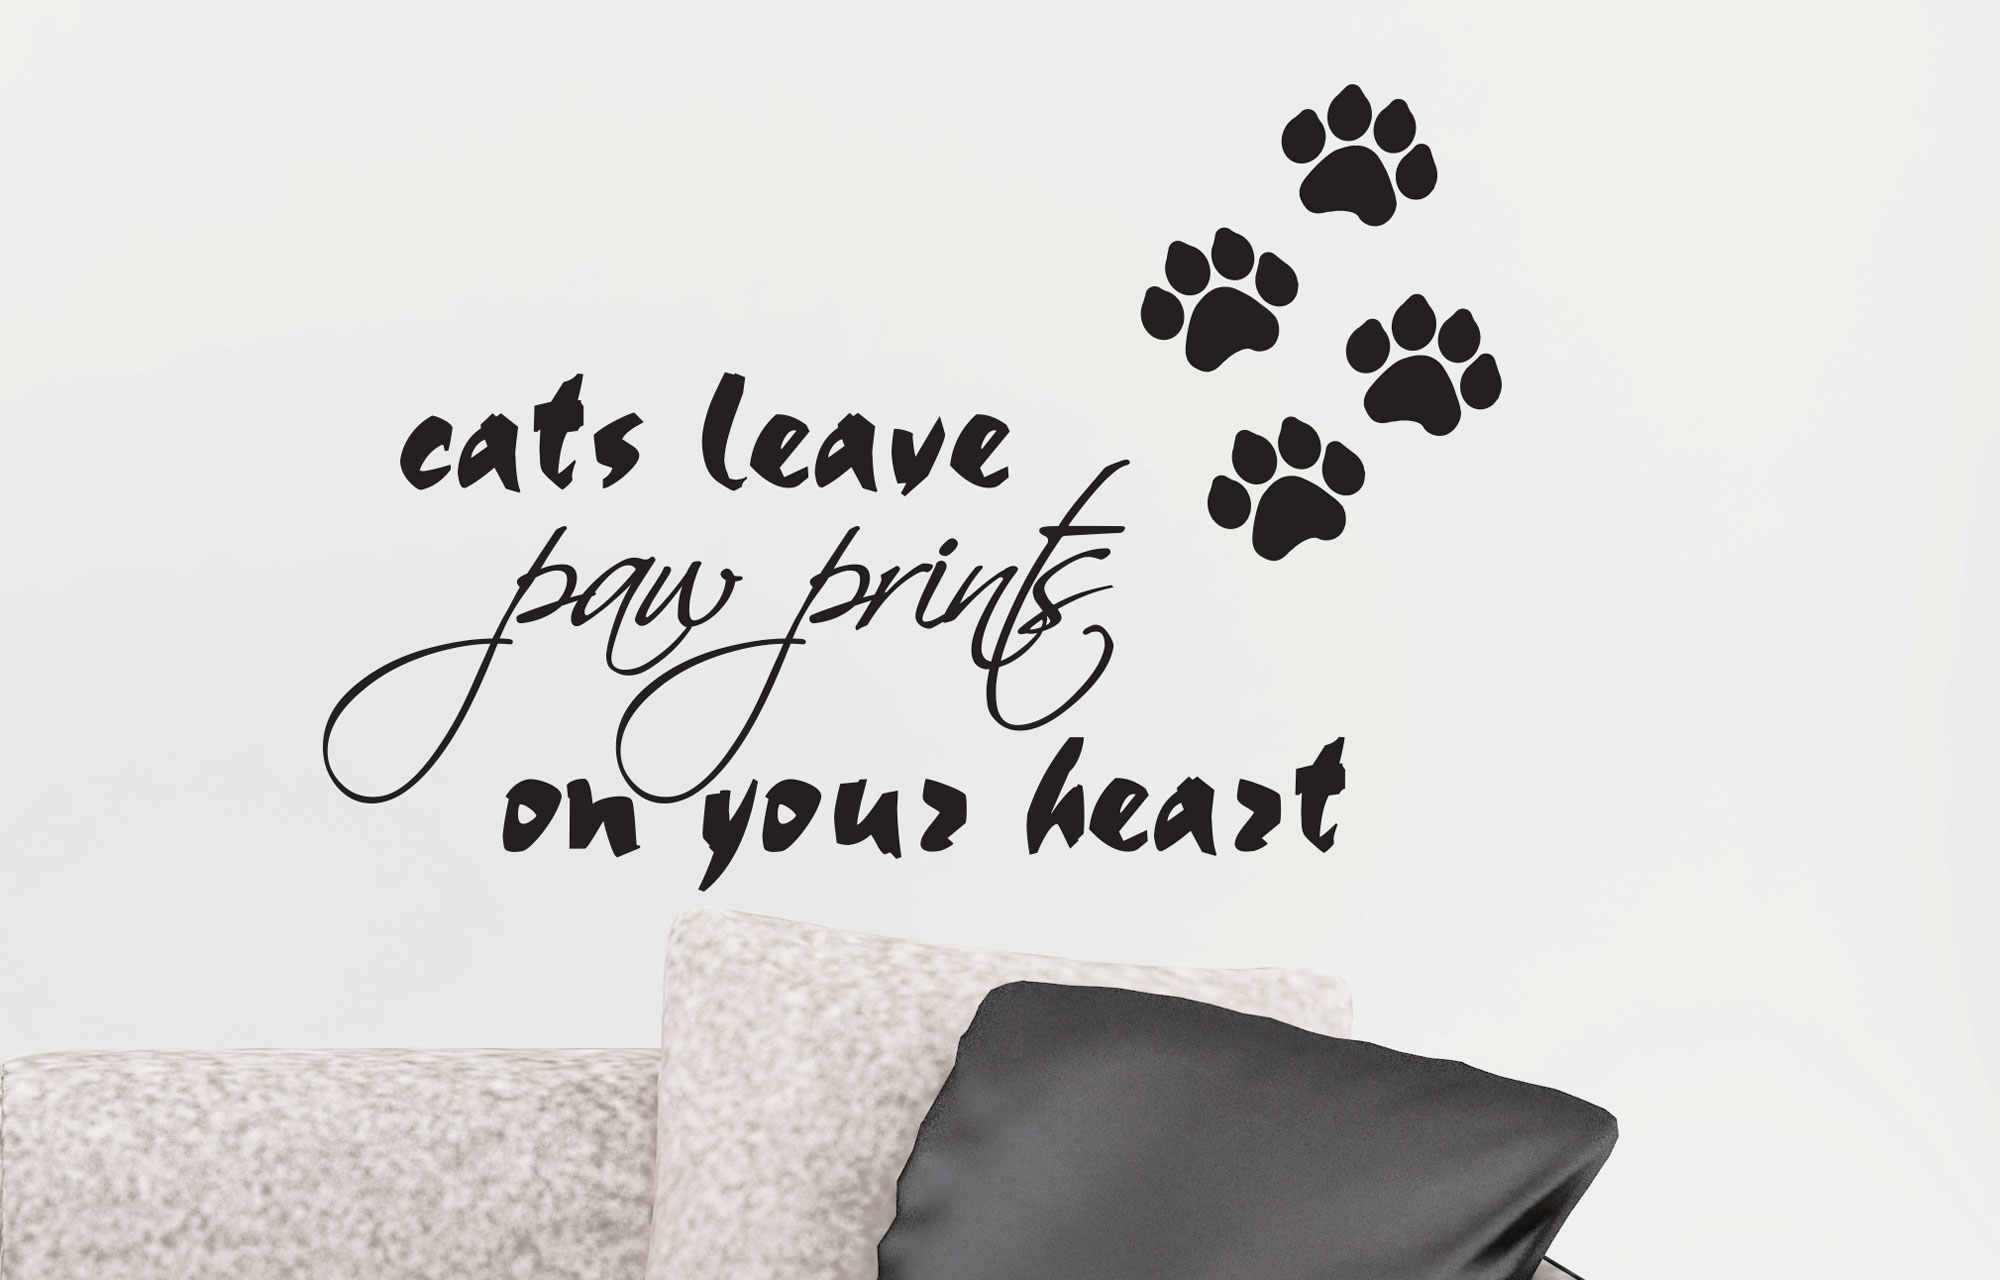 Cats Leave Paw Prints On Your Heart Removable Art Wall Decal Vinyl Circuit Board Tree Graphic Stickers Decals Sticker Ozdeco T S Polonaiz